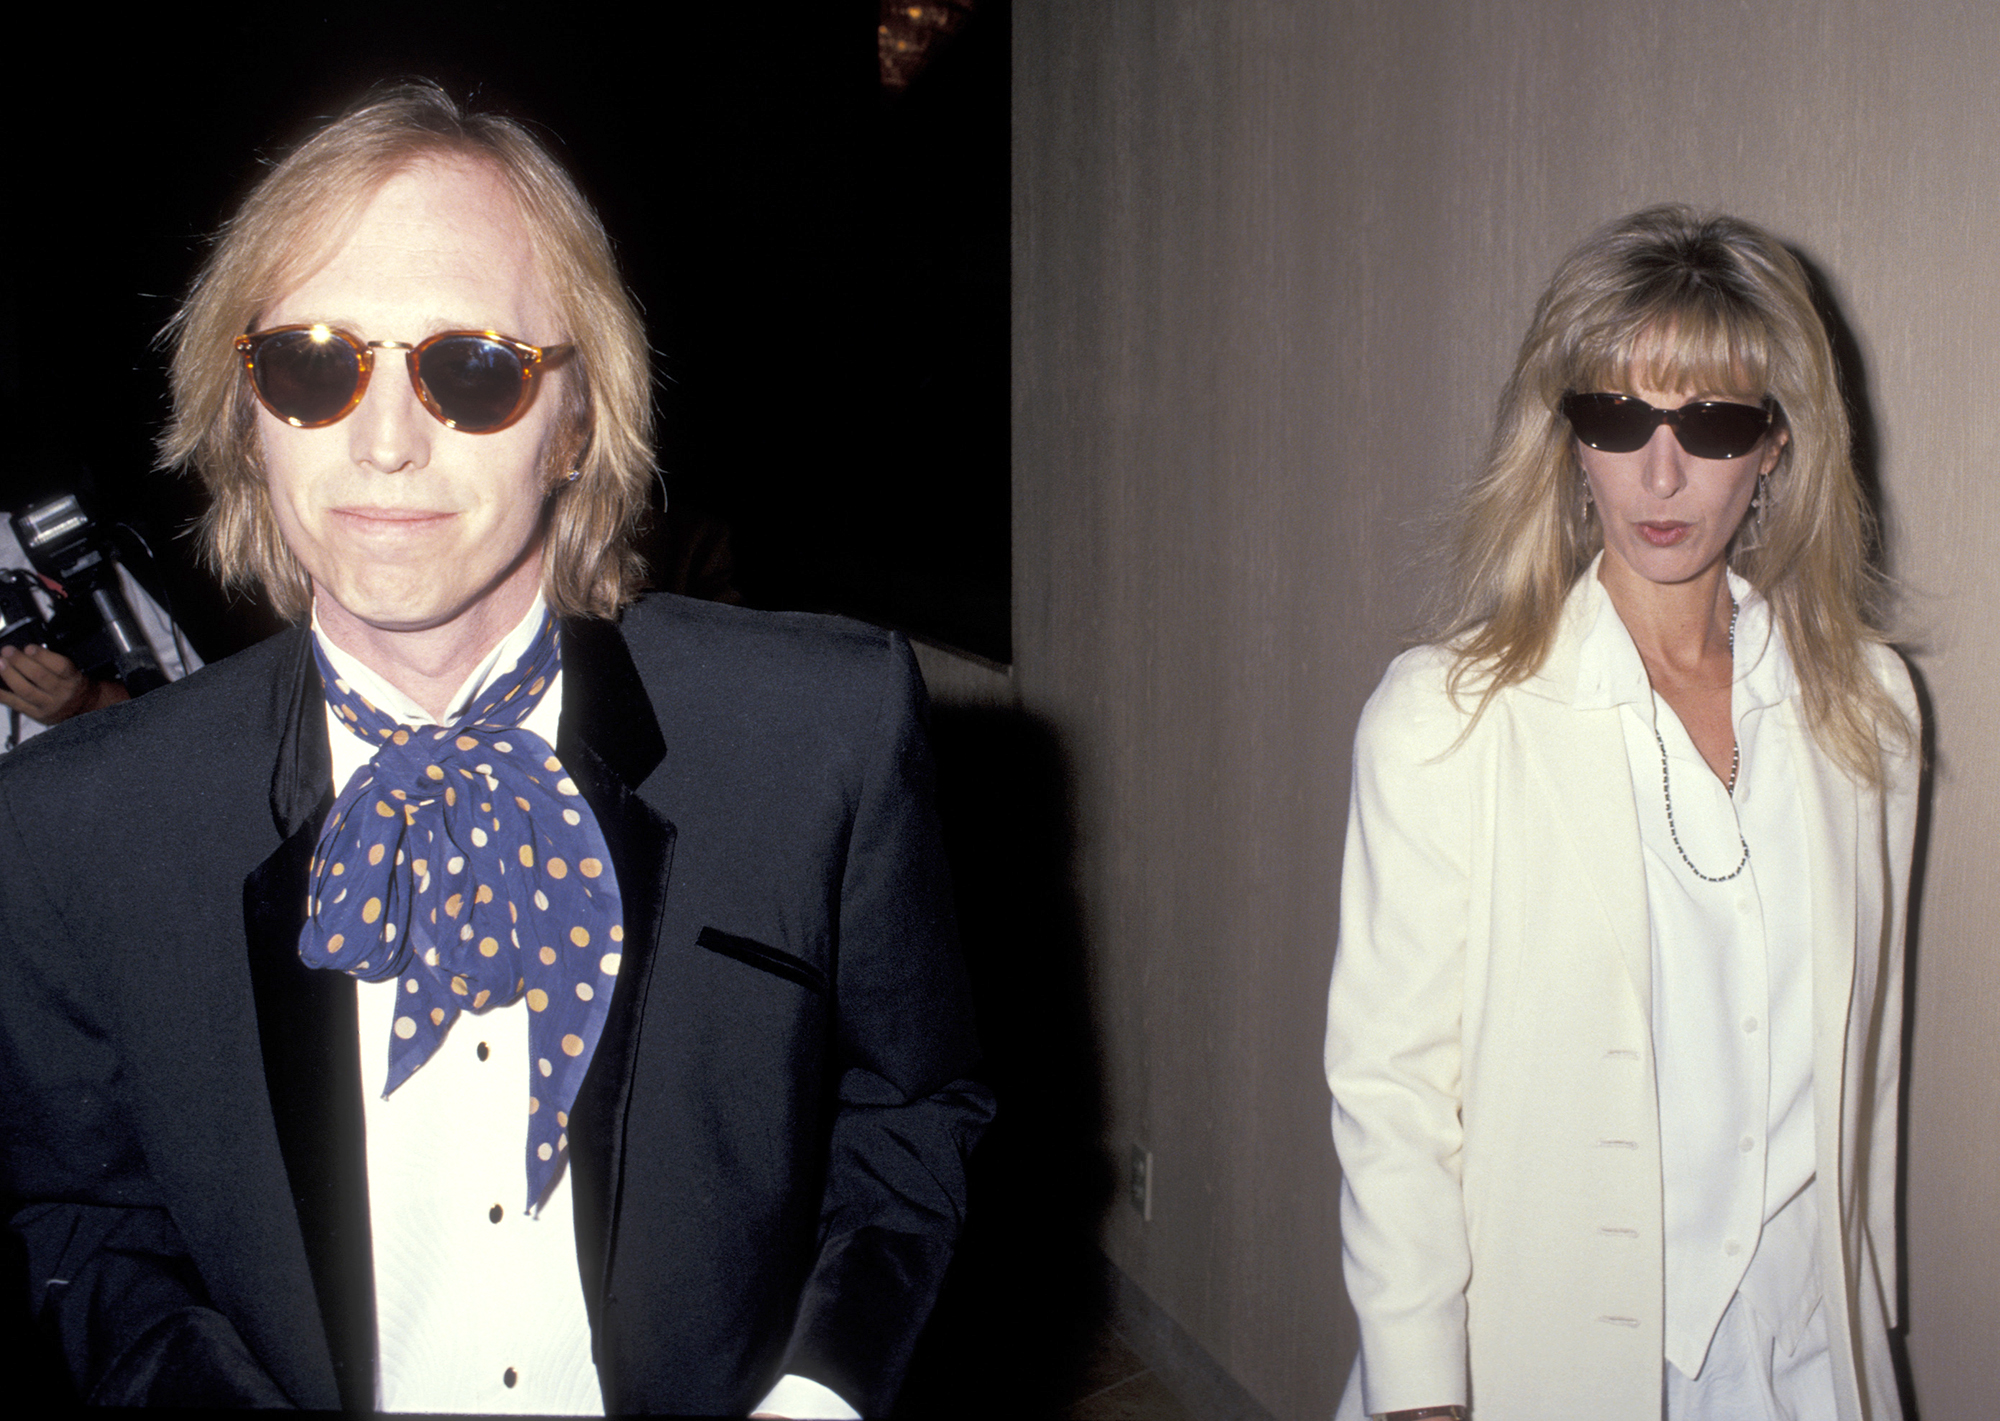 A Rocker and a Heartbreaker: Tom Petty's Life in Photos